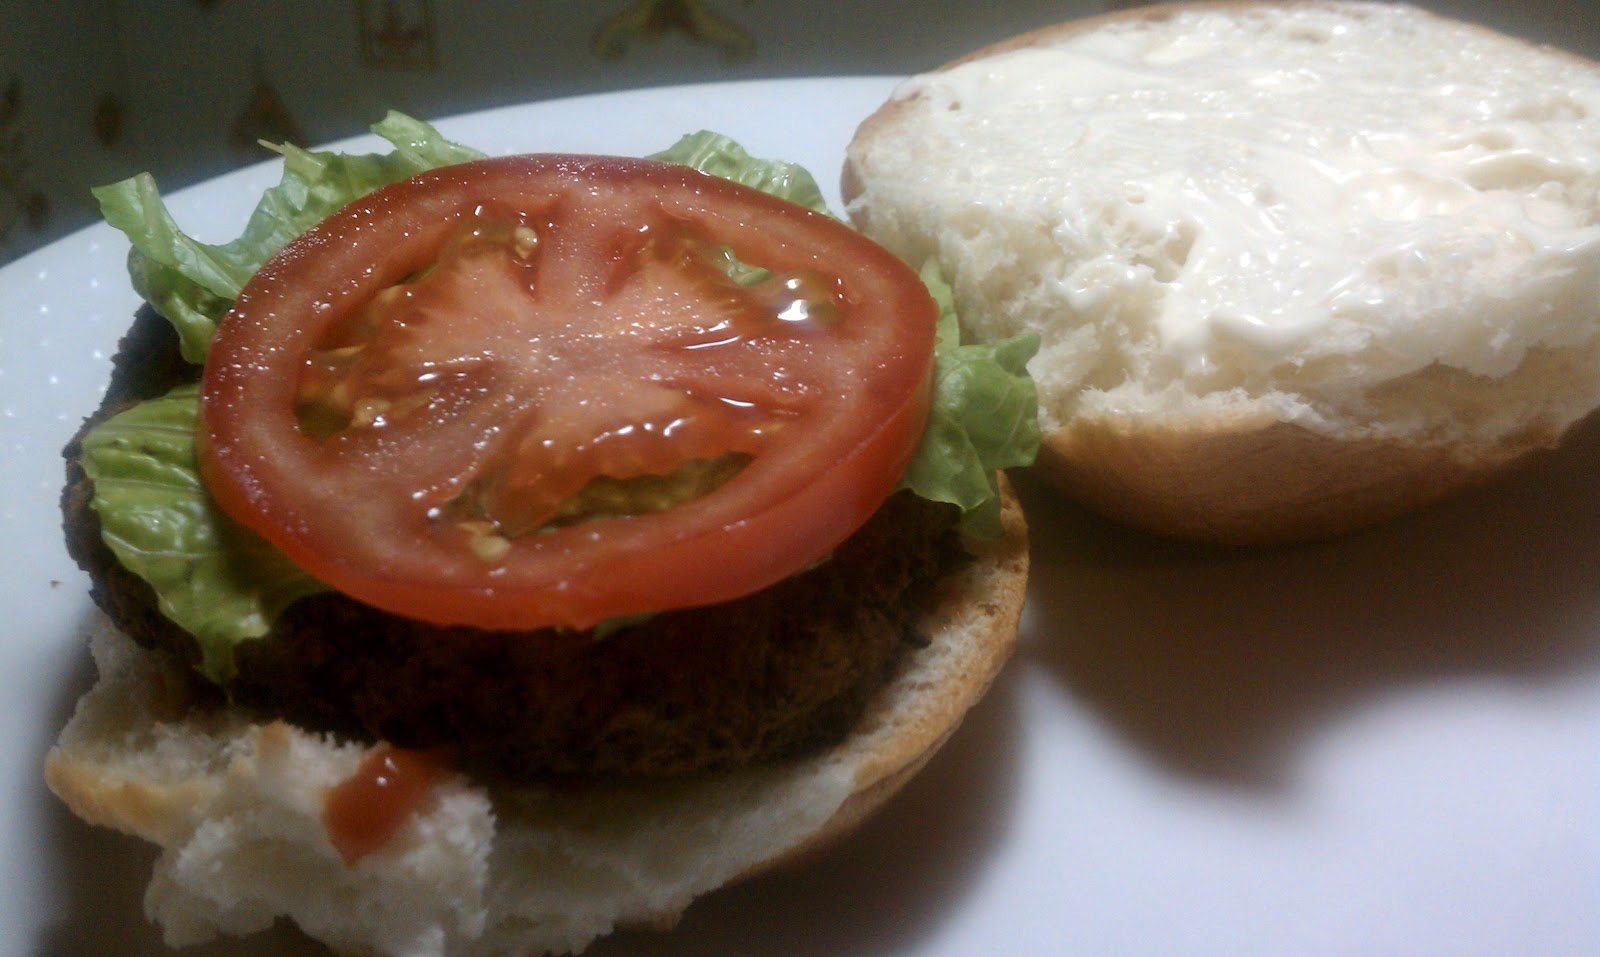 The Gluten Grapple: Baked Eggplant Burgers